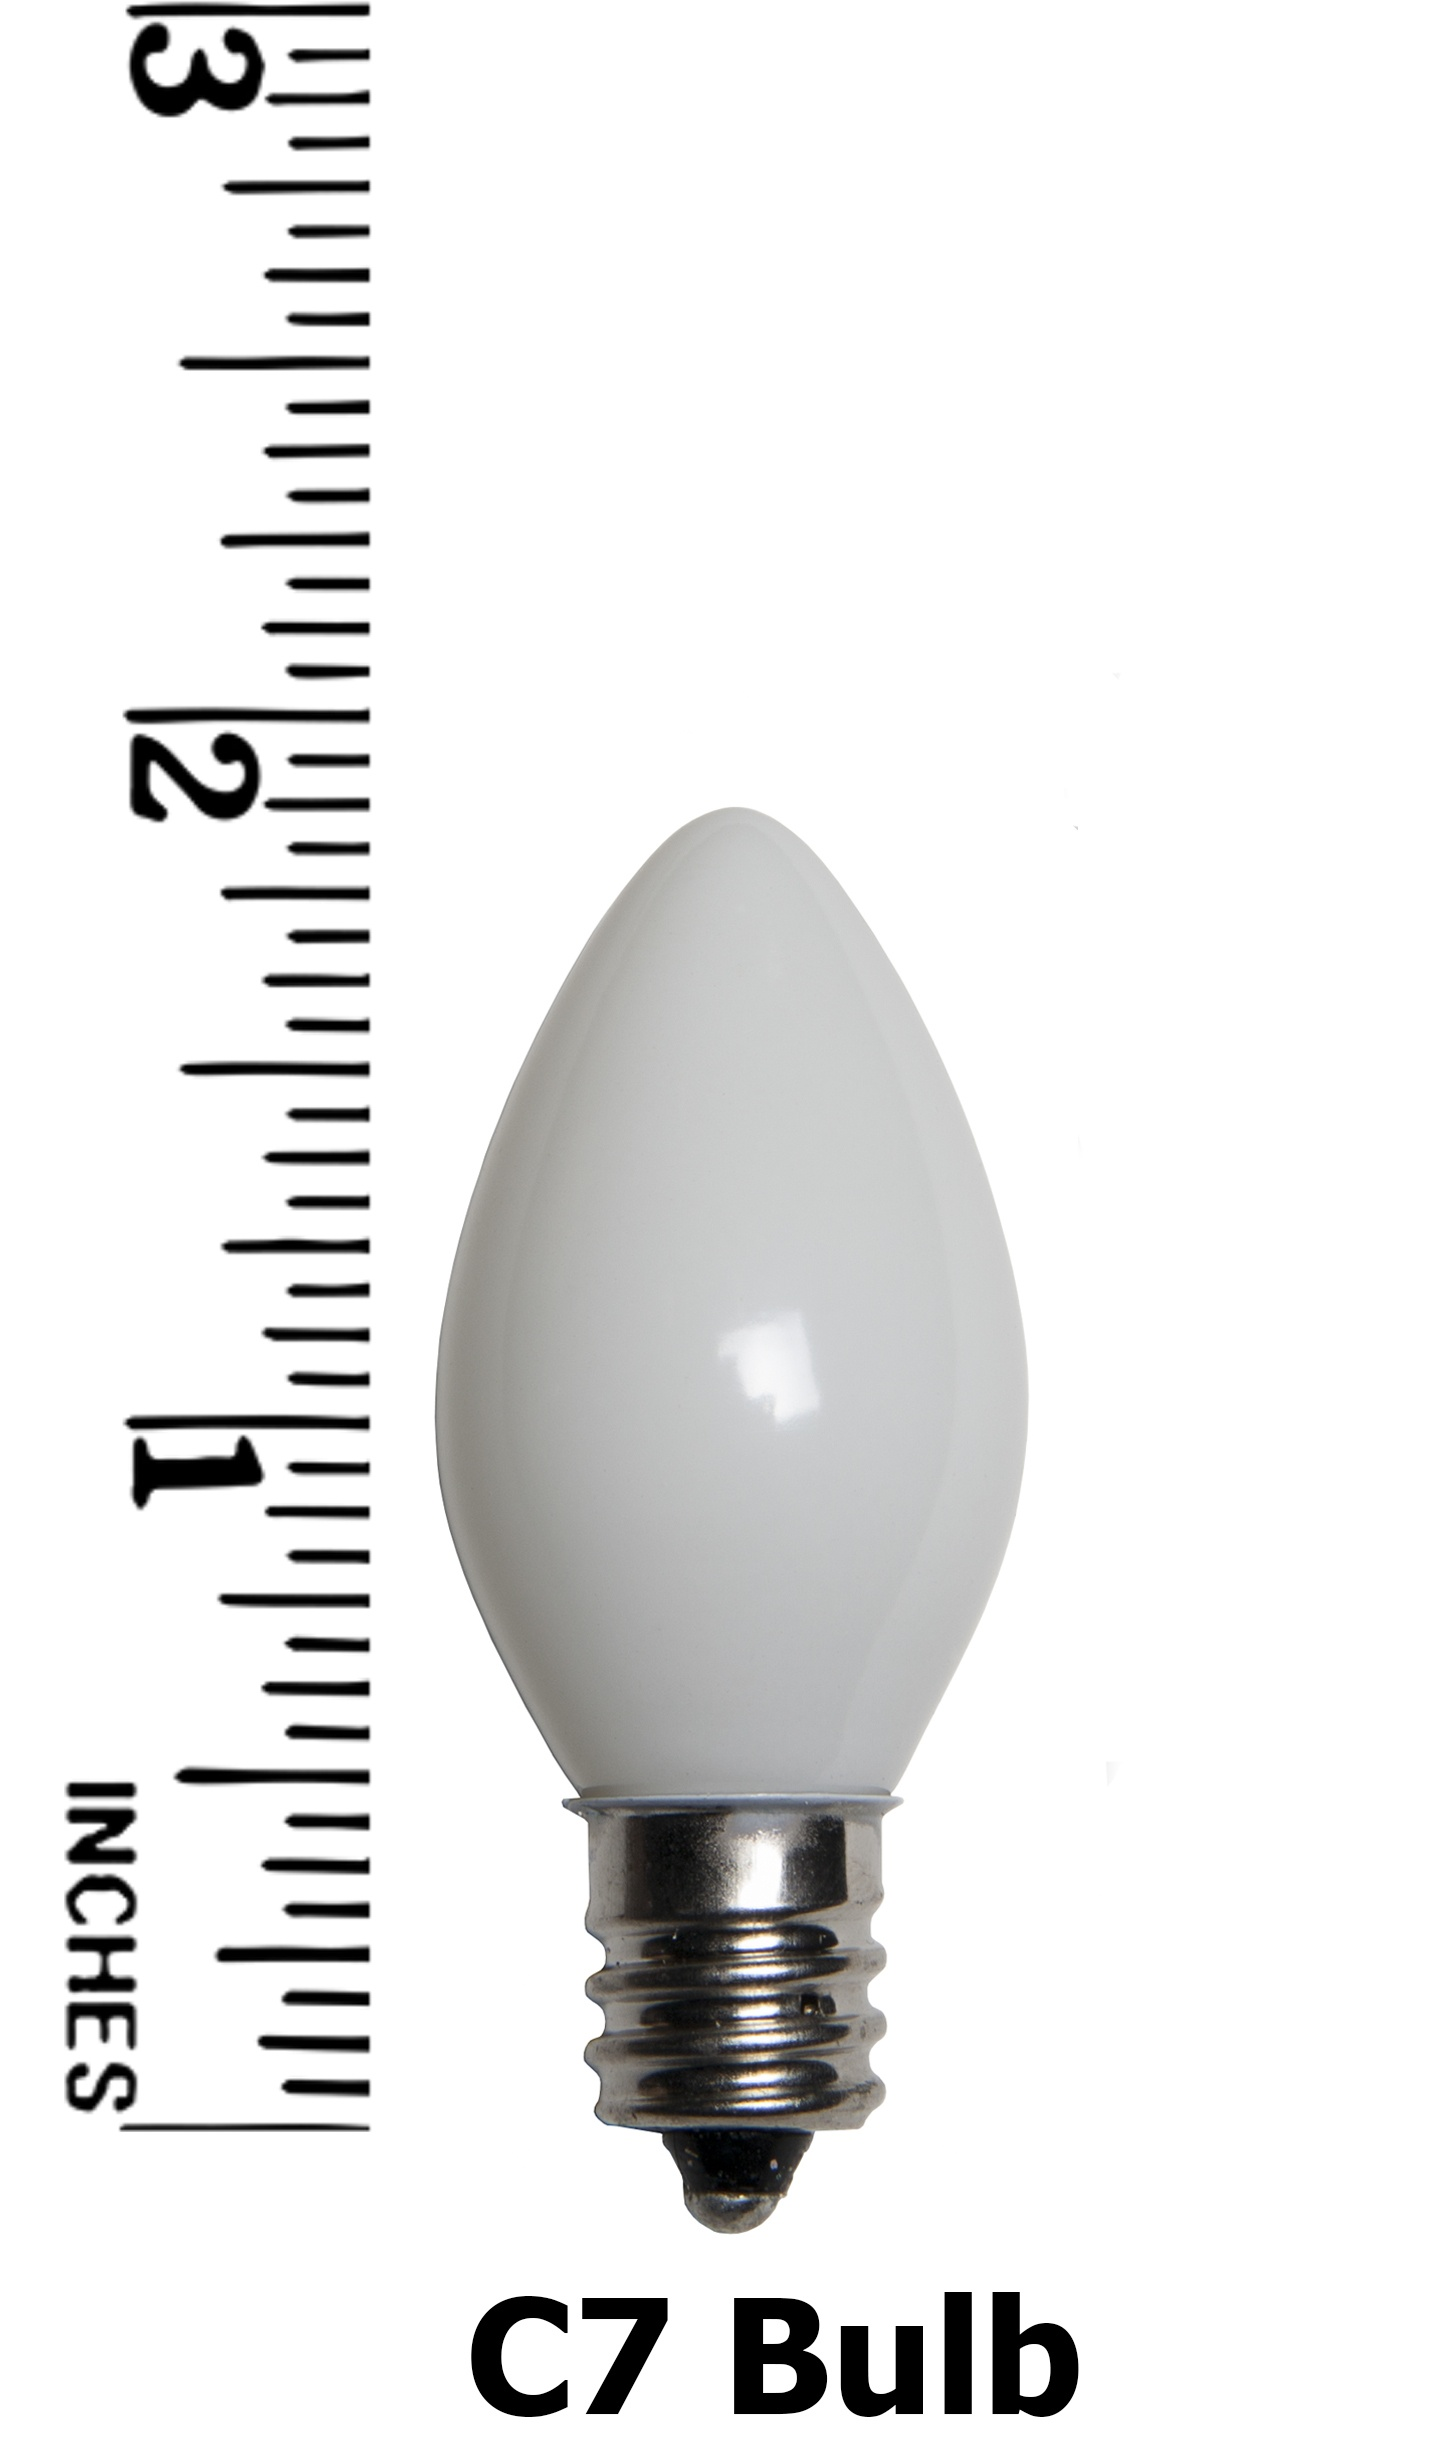 C7 White Bulb Measurement